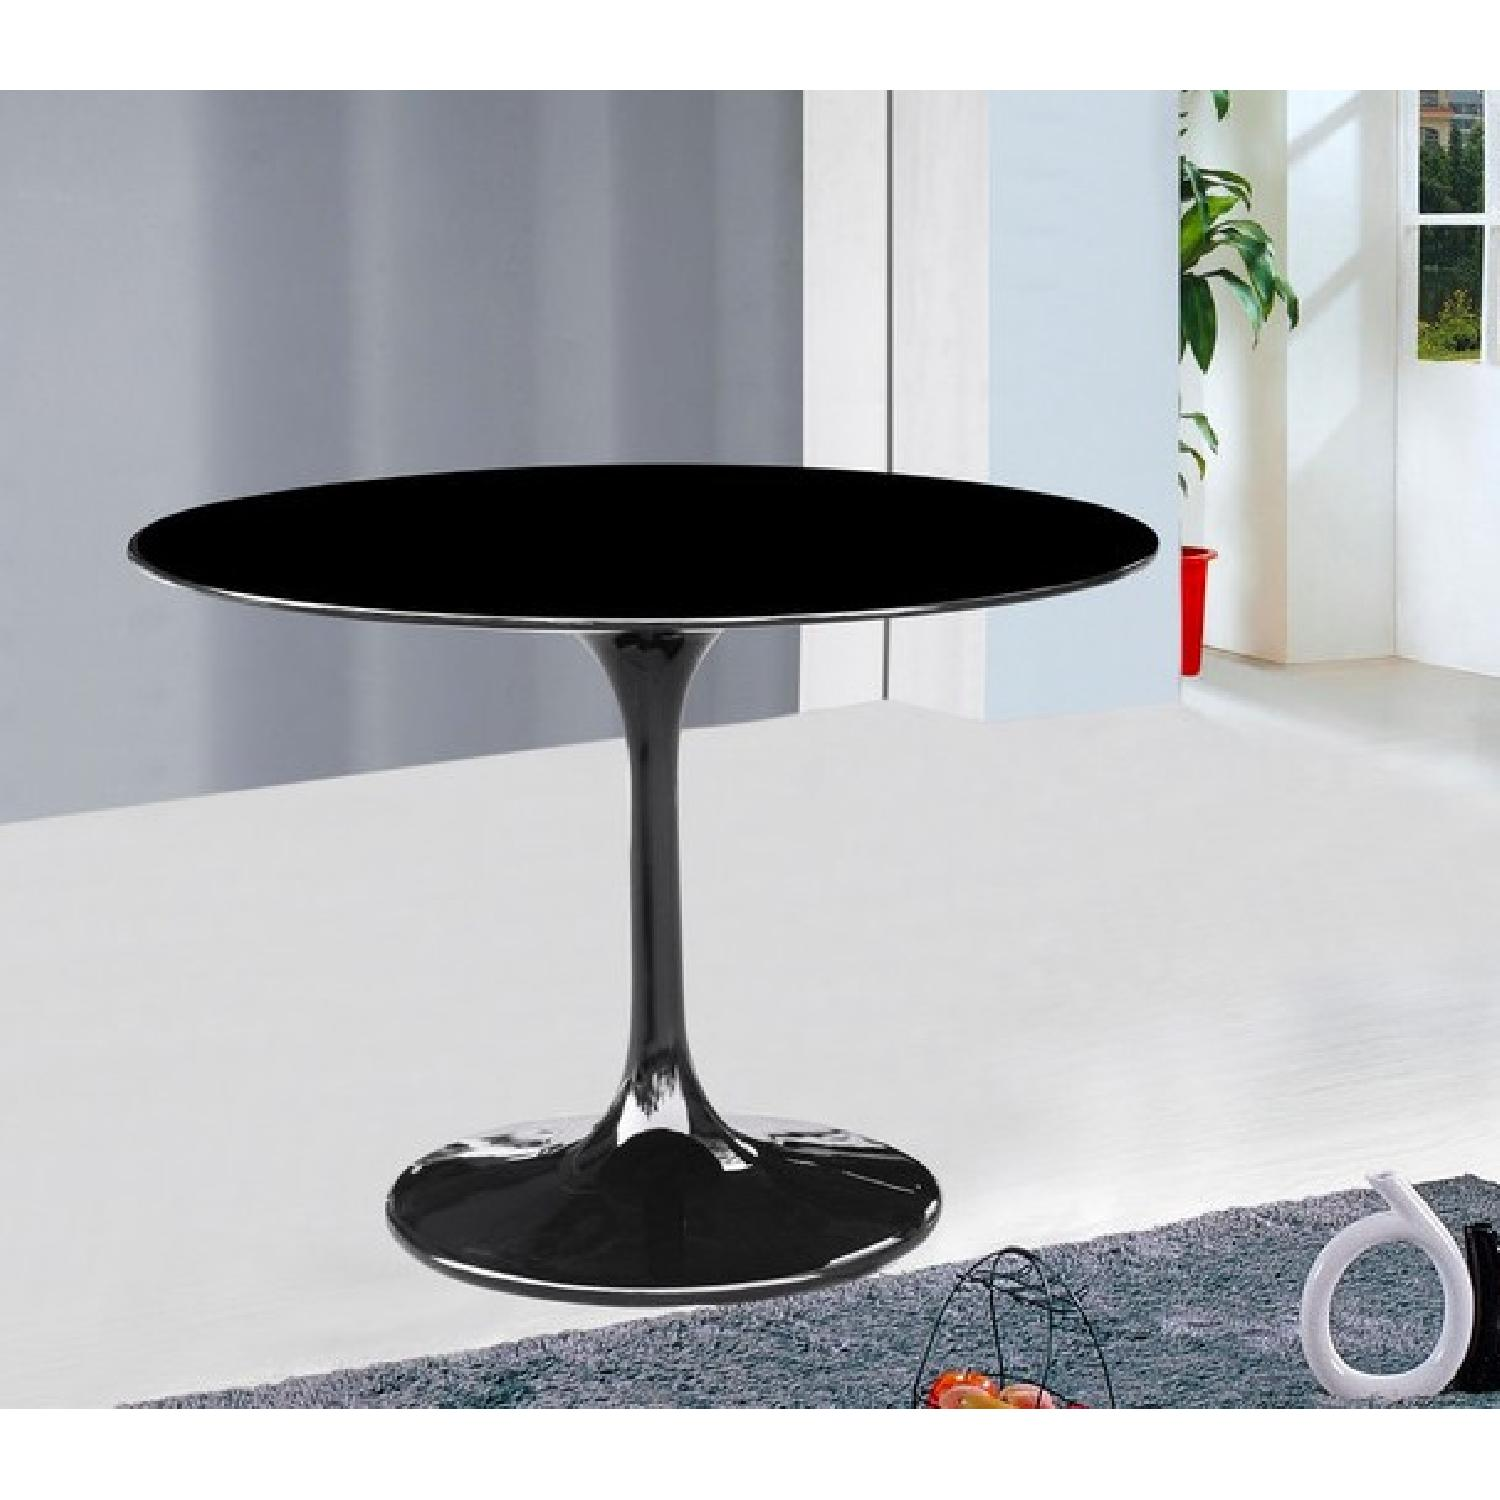 Fine Mod Imports Dining Table - image-2